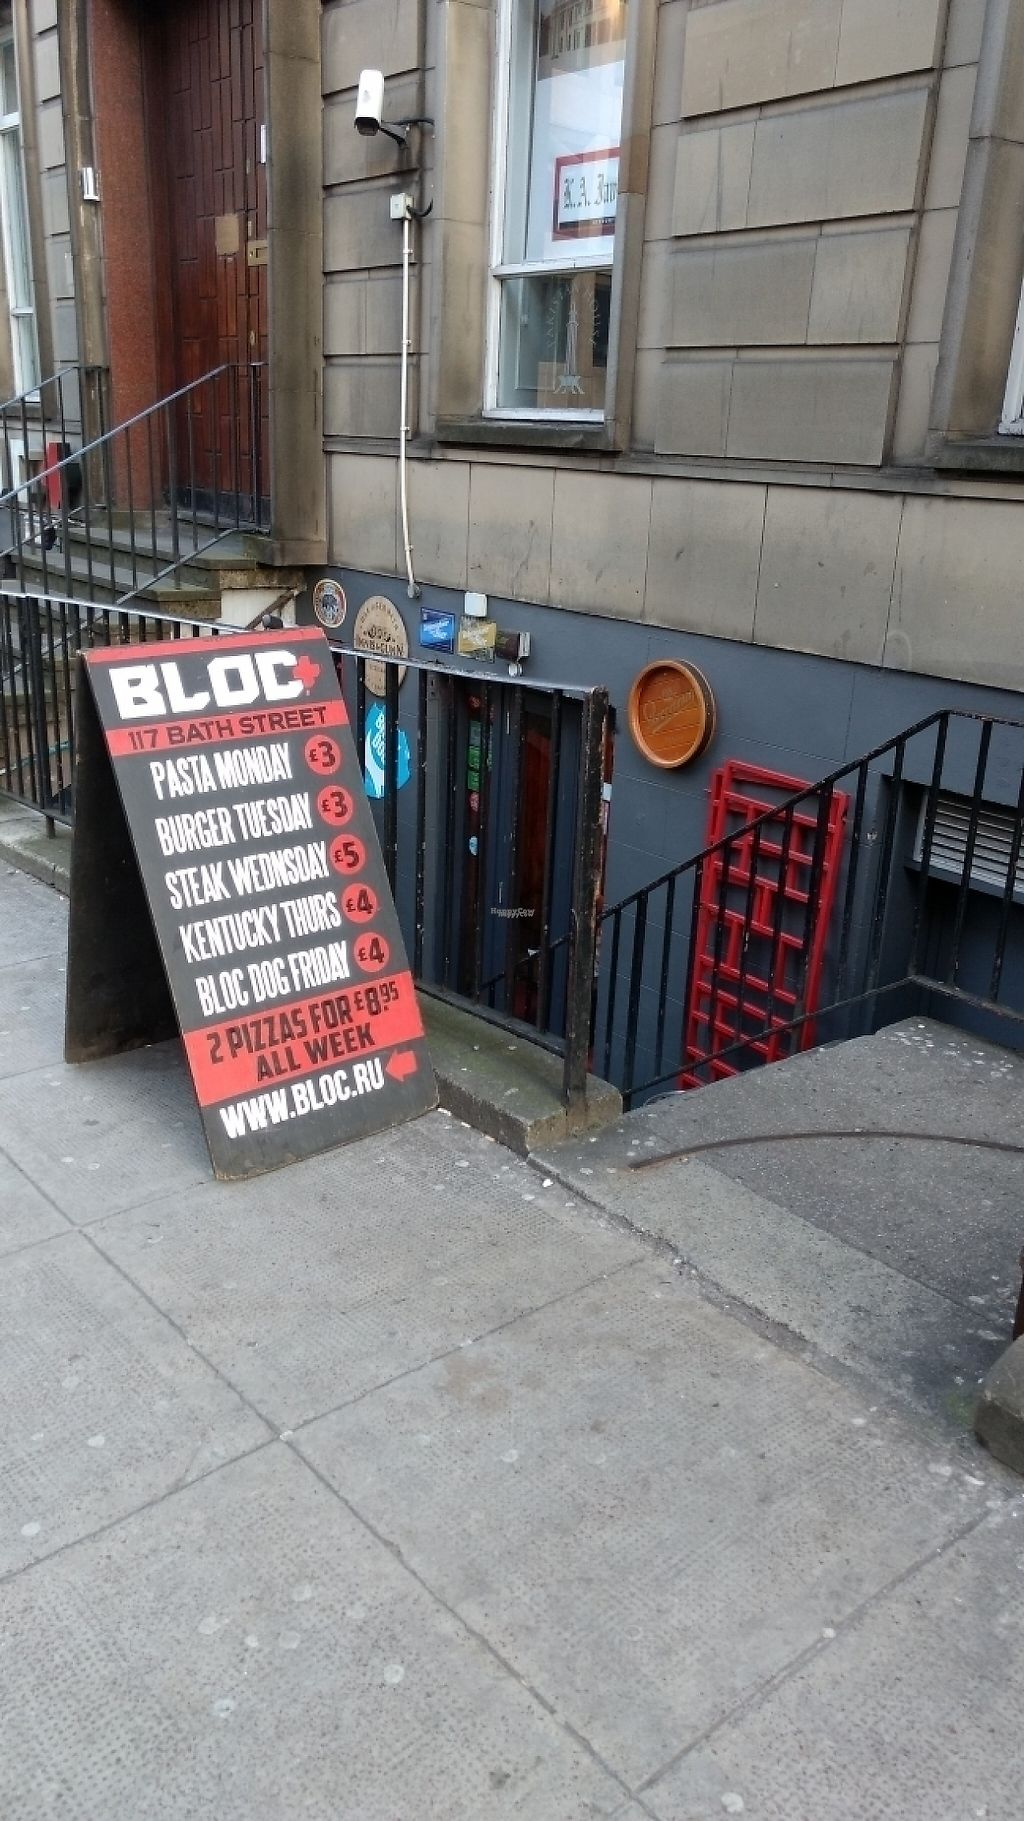 """Photo of Bloc Bar Glasgow  by <a href=""""/members/profile/craigmc"""">craigmc</a> <br/>outside <br/> March 27, 2017  - <a href='/contact/abuse/image/78988/241780'>Report</a>"""